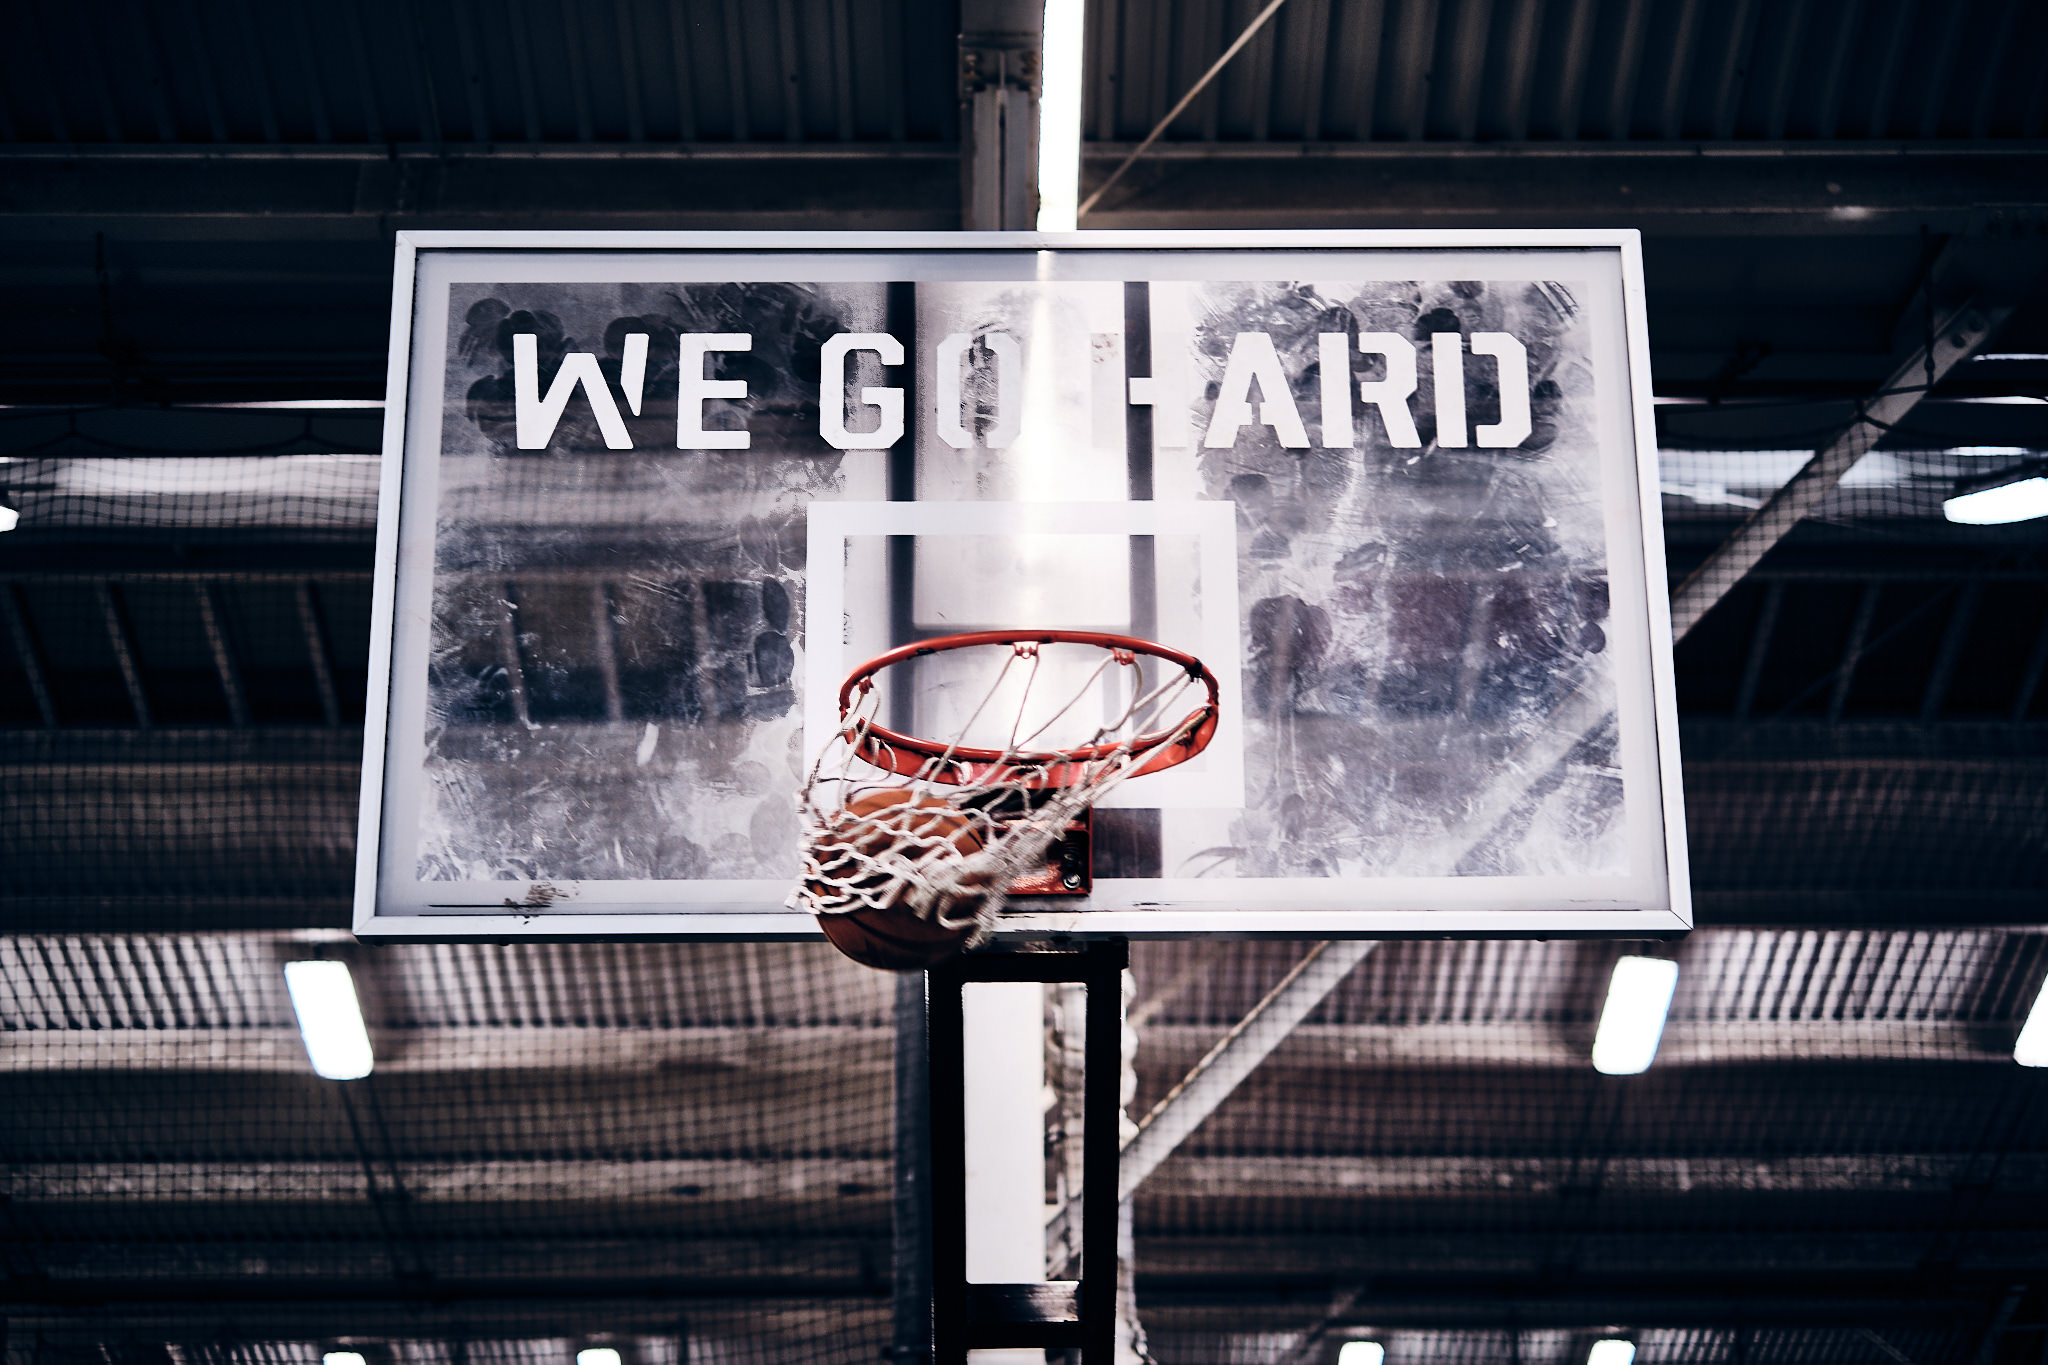 We Go Hard - New York - Basketball